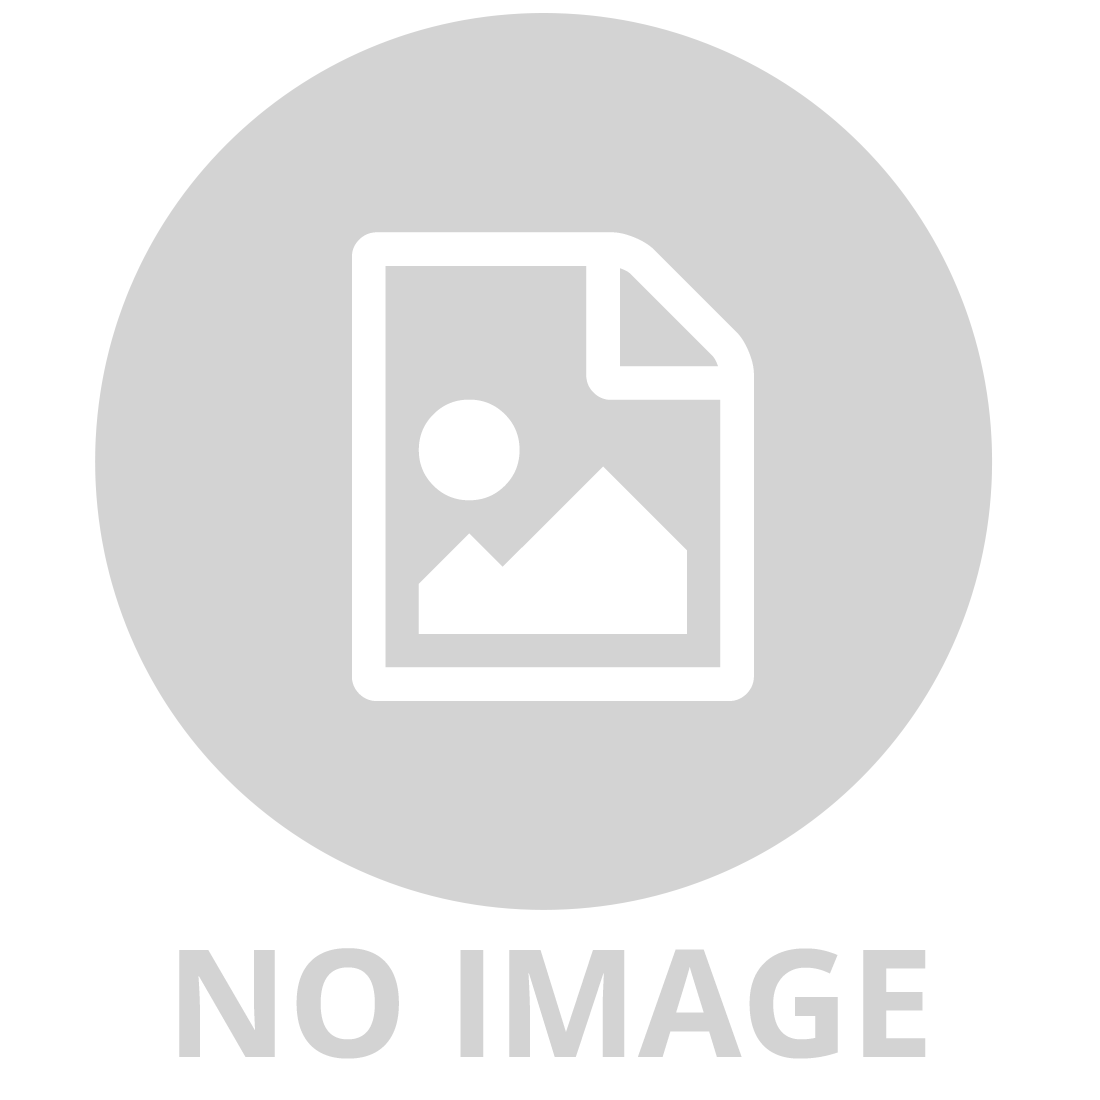 EASY MAGIC FOR YOUNG MAGICIANS